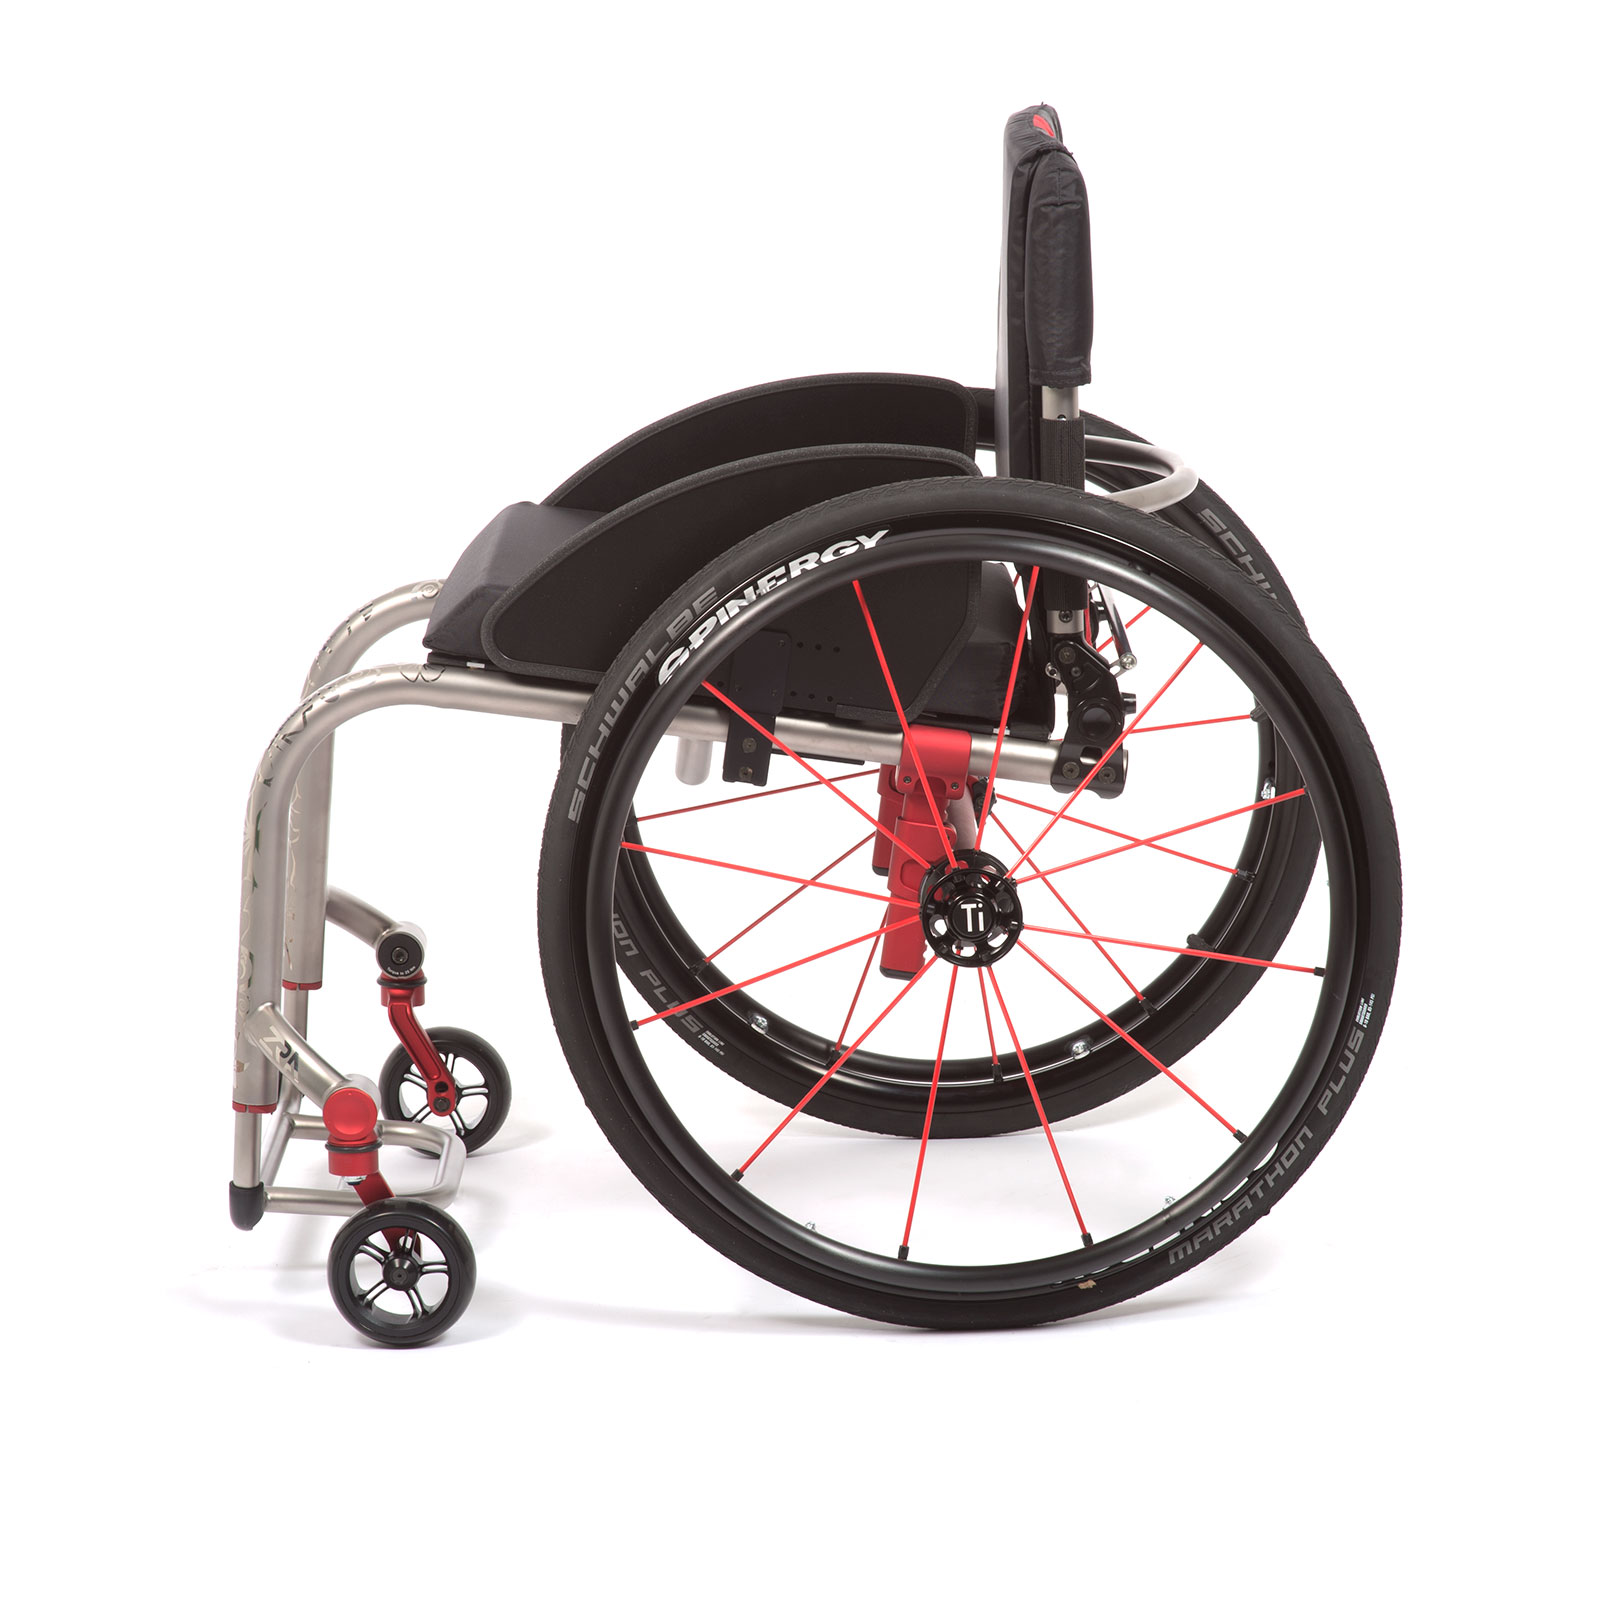 The Left side of Red Wheelchair